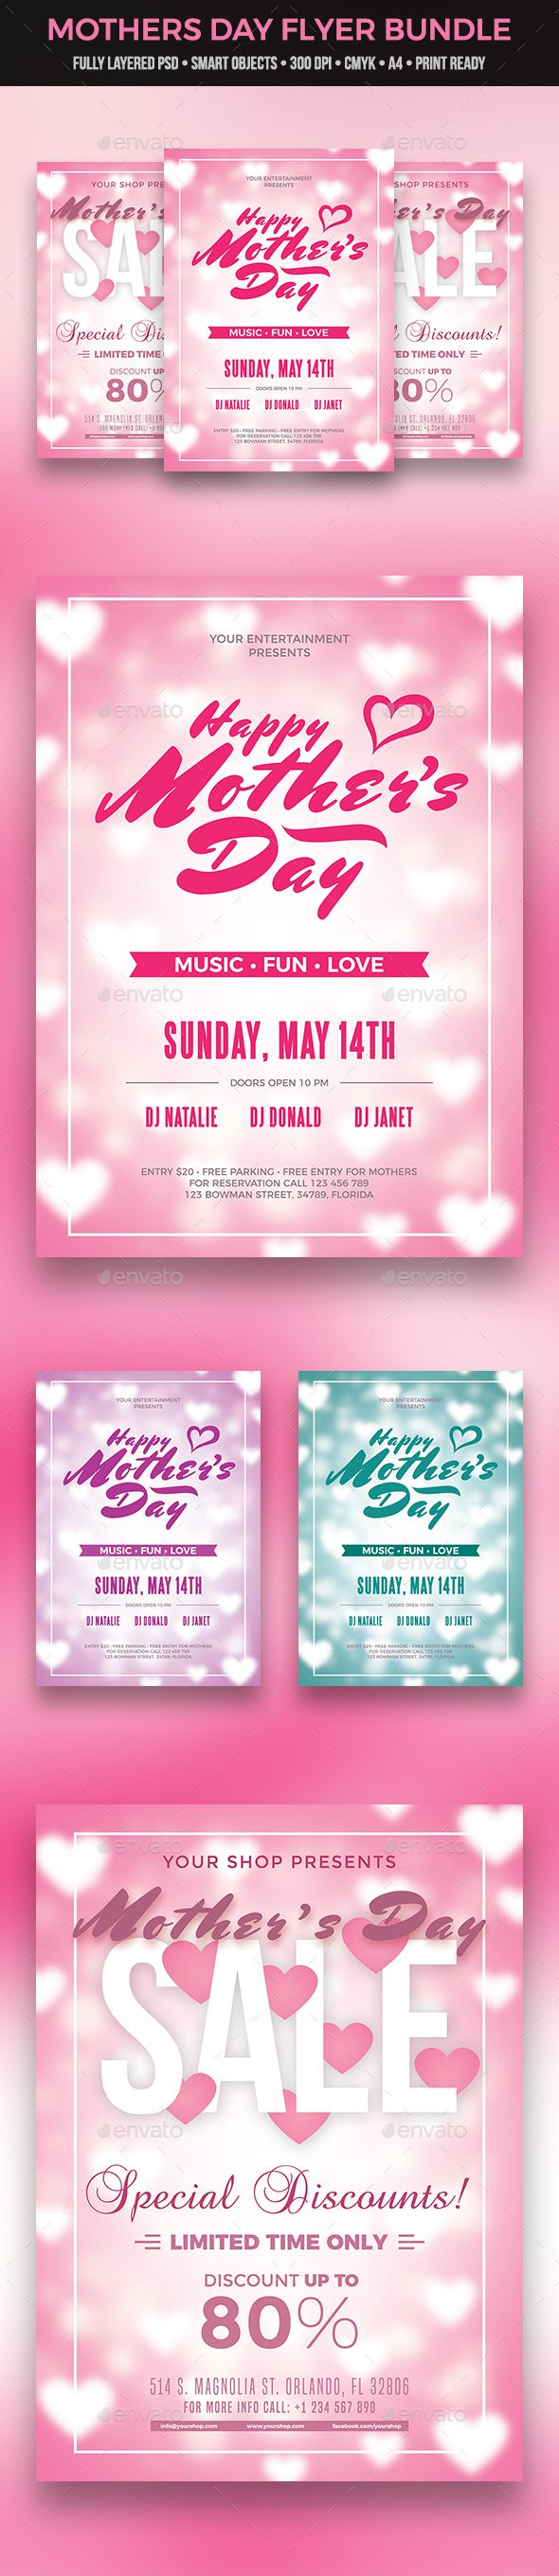 Mothers Day Flyer Bundle  Flyer Template Event Flyers And Fonts